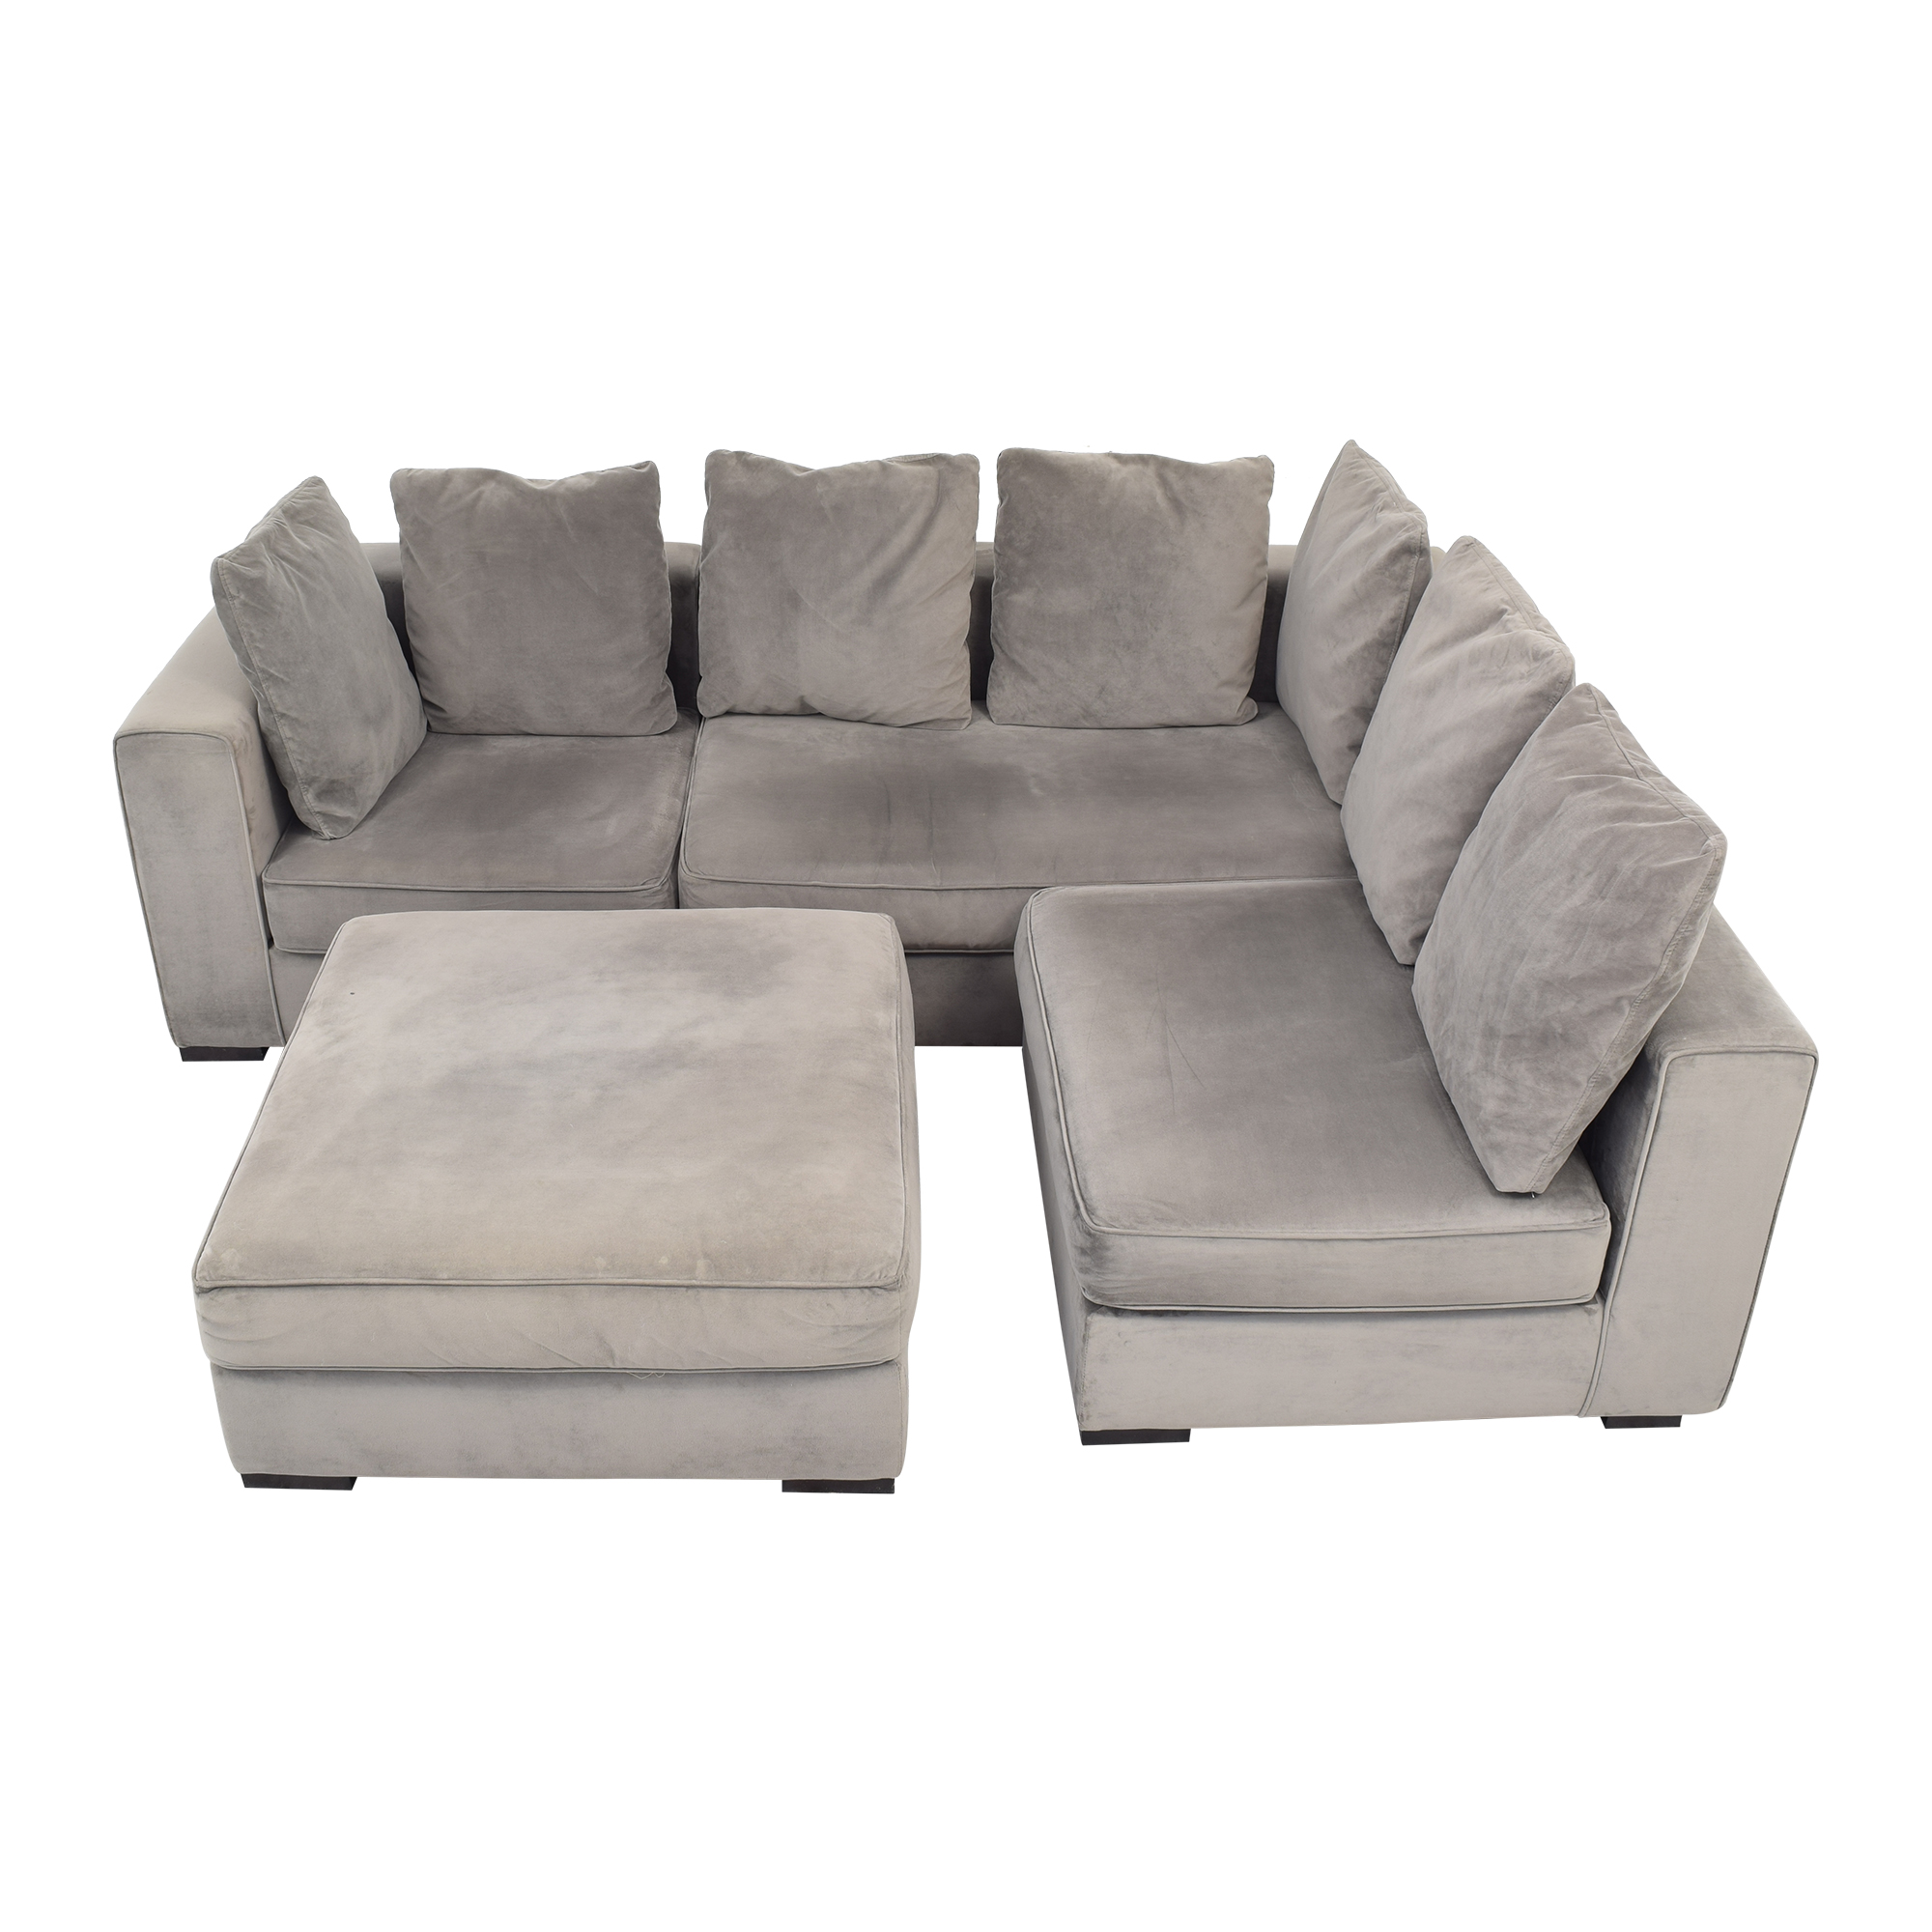 West Elm West Elm 3-Piece Sectional with Ottoman used